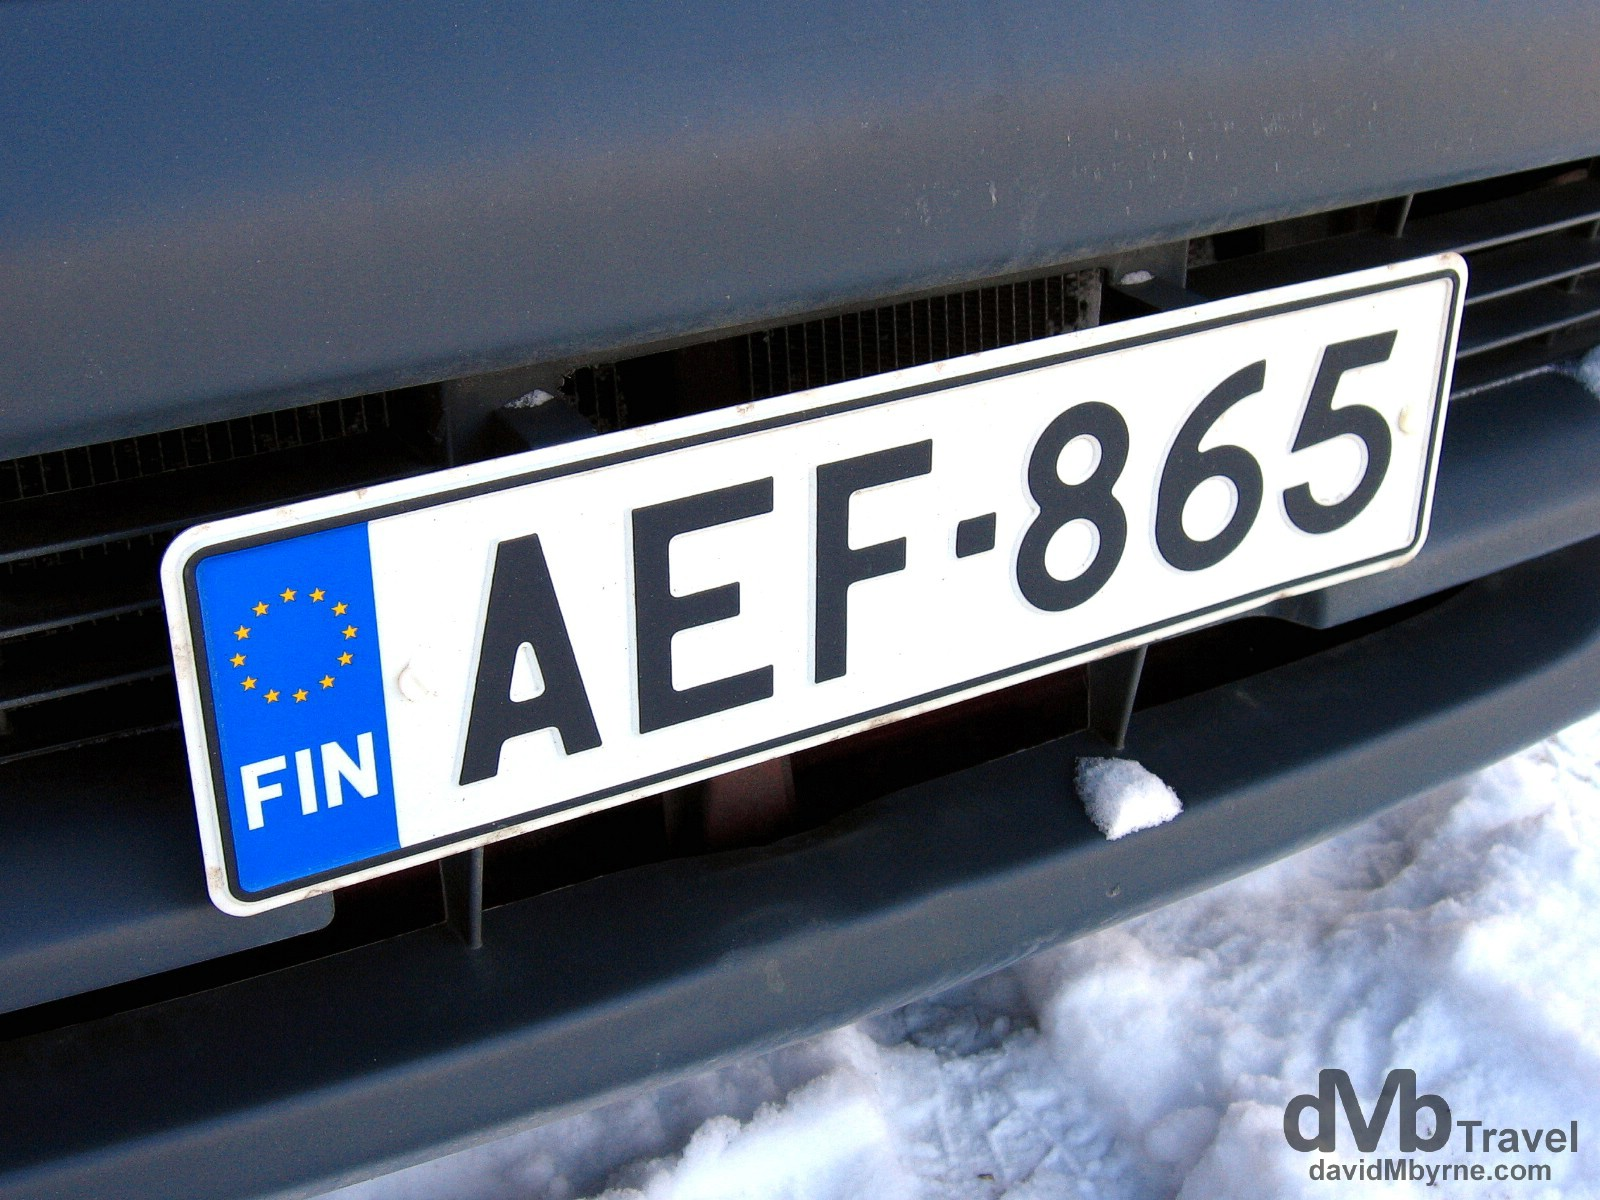 A car license plate on the snowy streets of Helsinki, Finland. March 1, 2006.